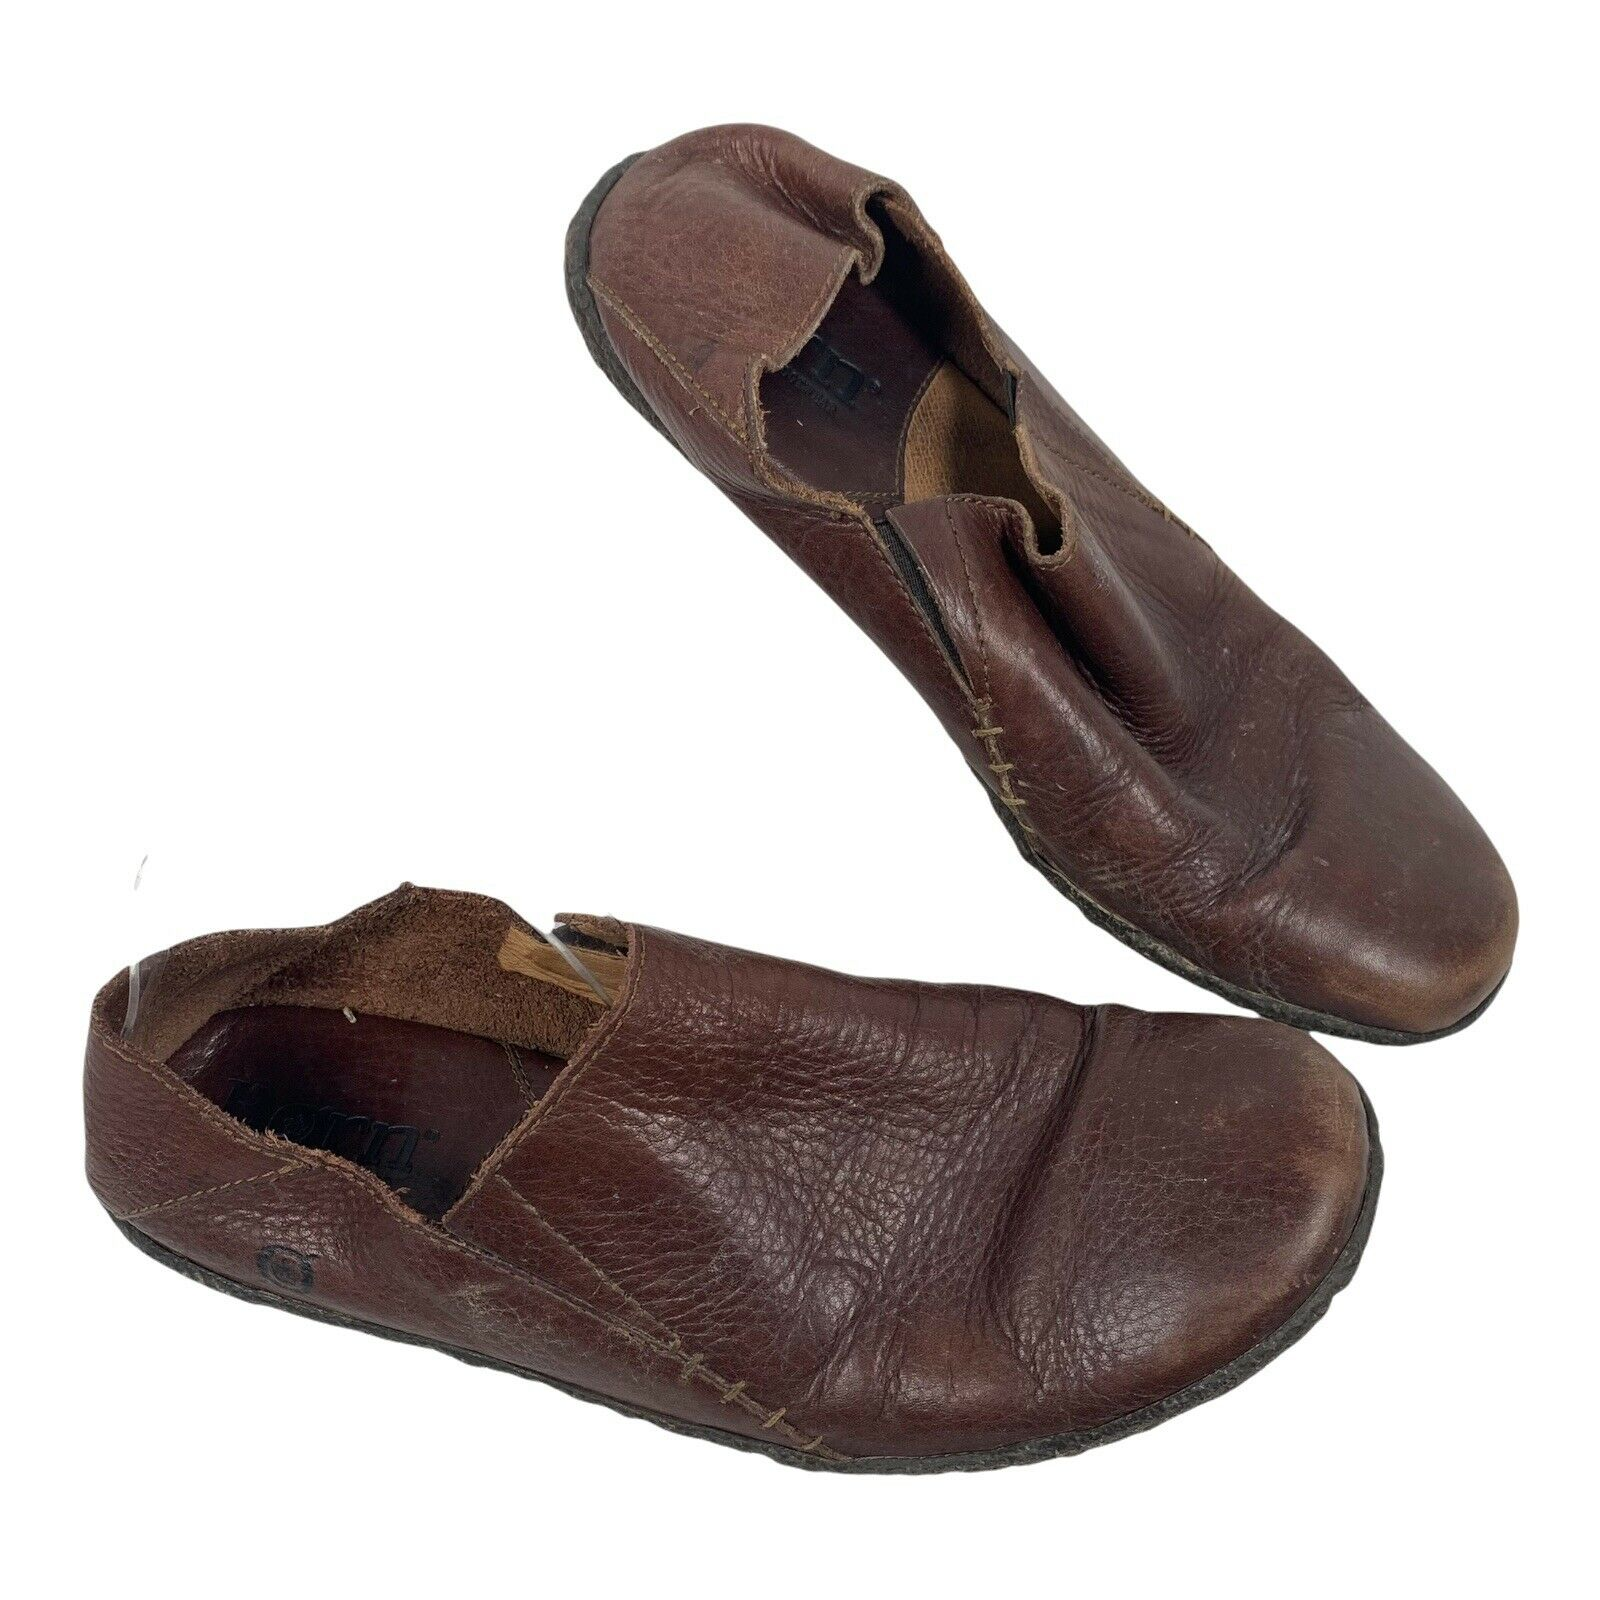 BORN Sz 9.5 Womens M6694 Brown Leather Pull On Shoe Slide Collapse Heel Flat